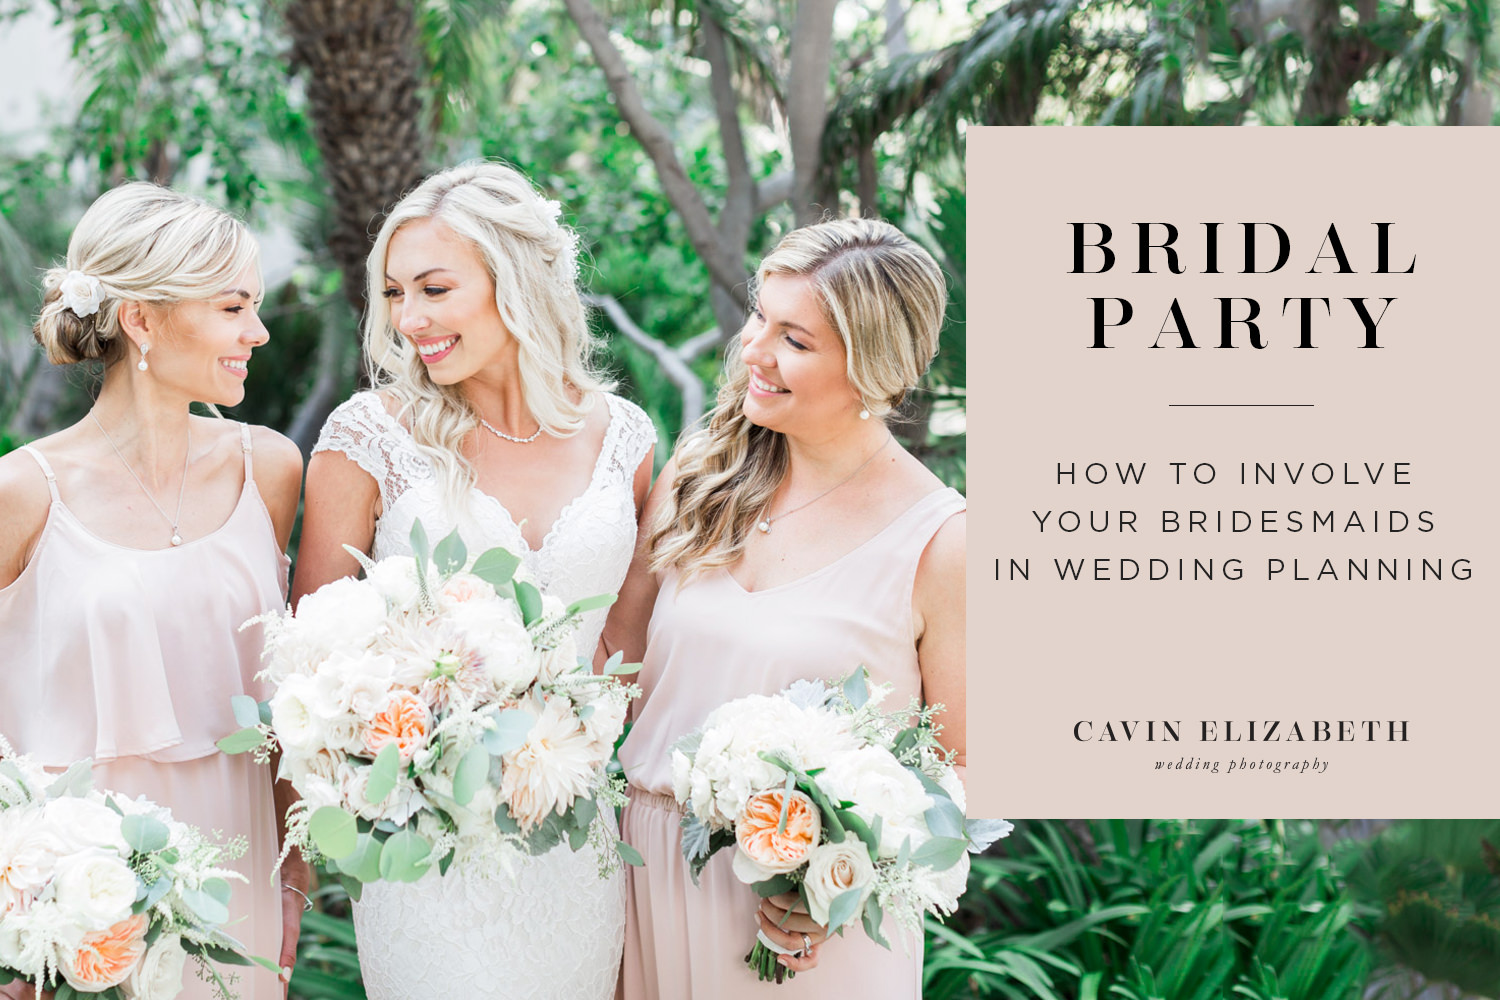 Fun Ways to Get Your Bridesmaids Involved in Wedding Planning, How your bridesmaids can help you with planning your wedding